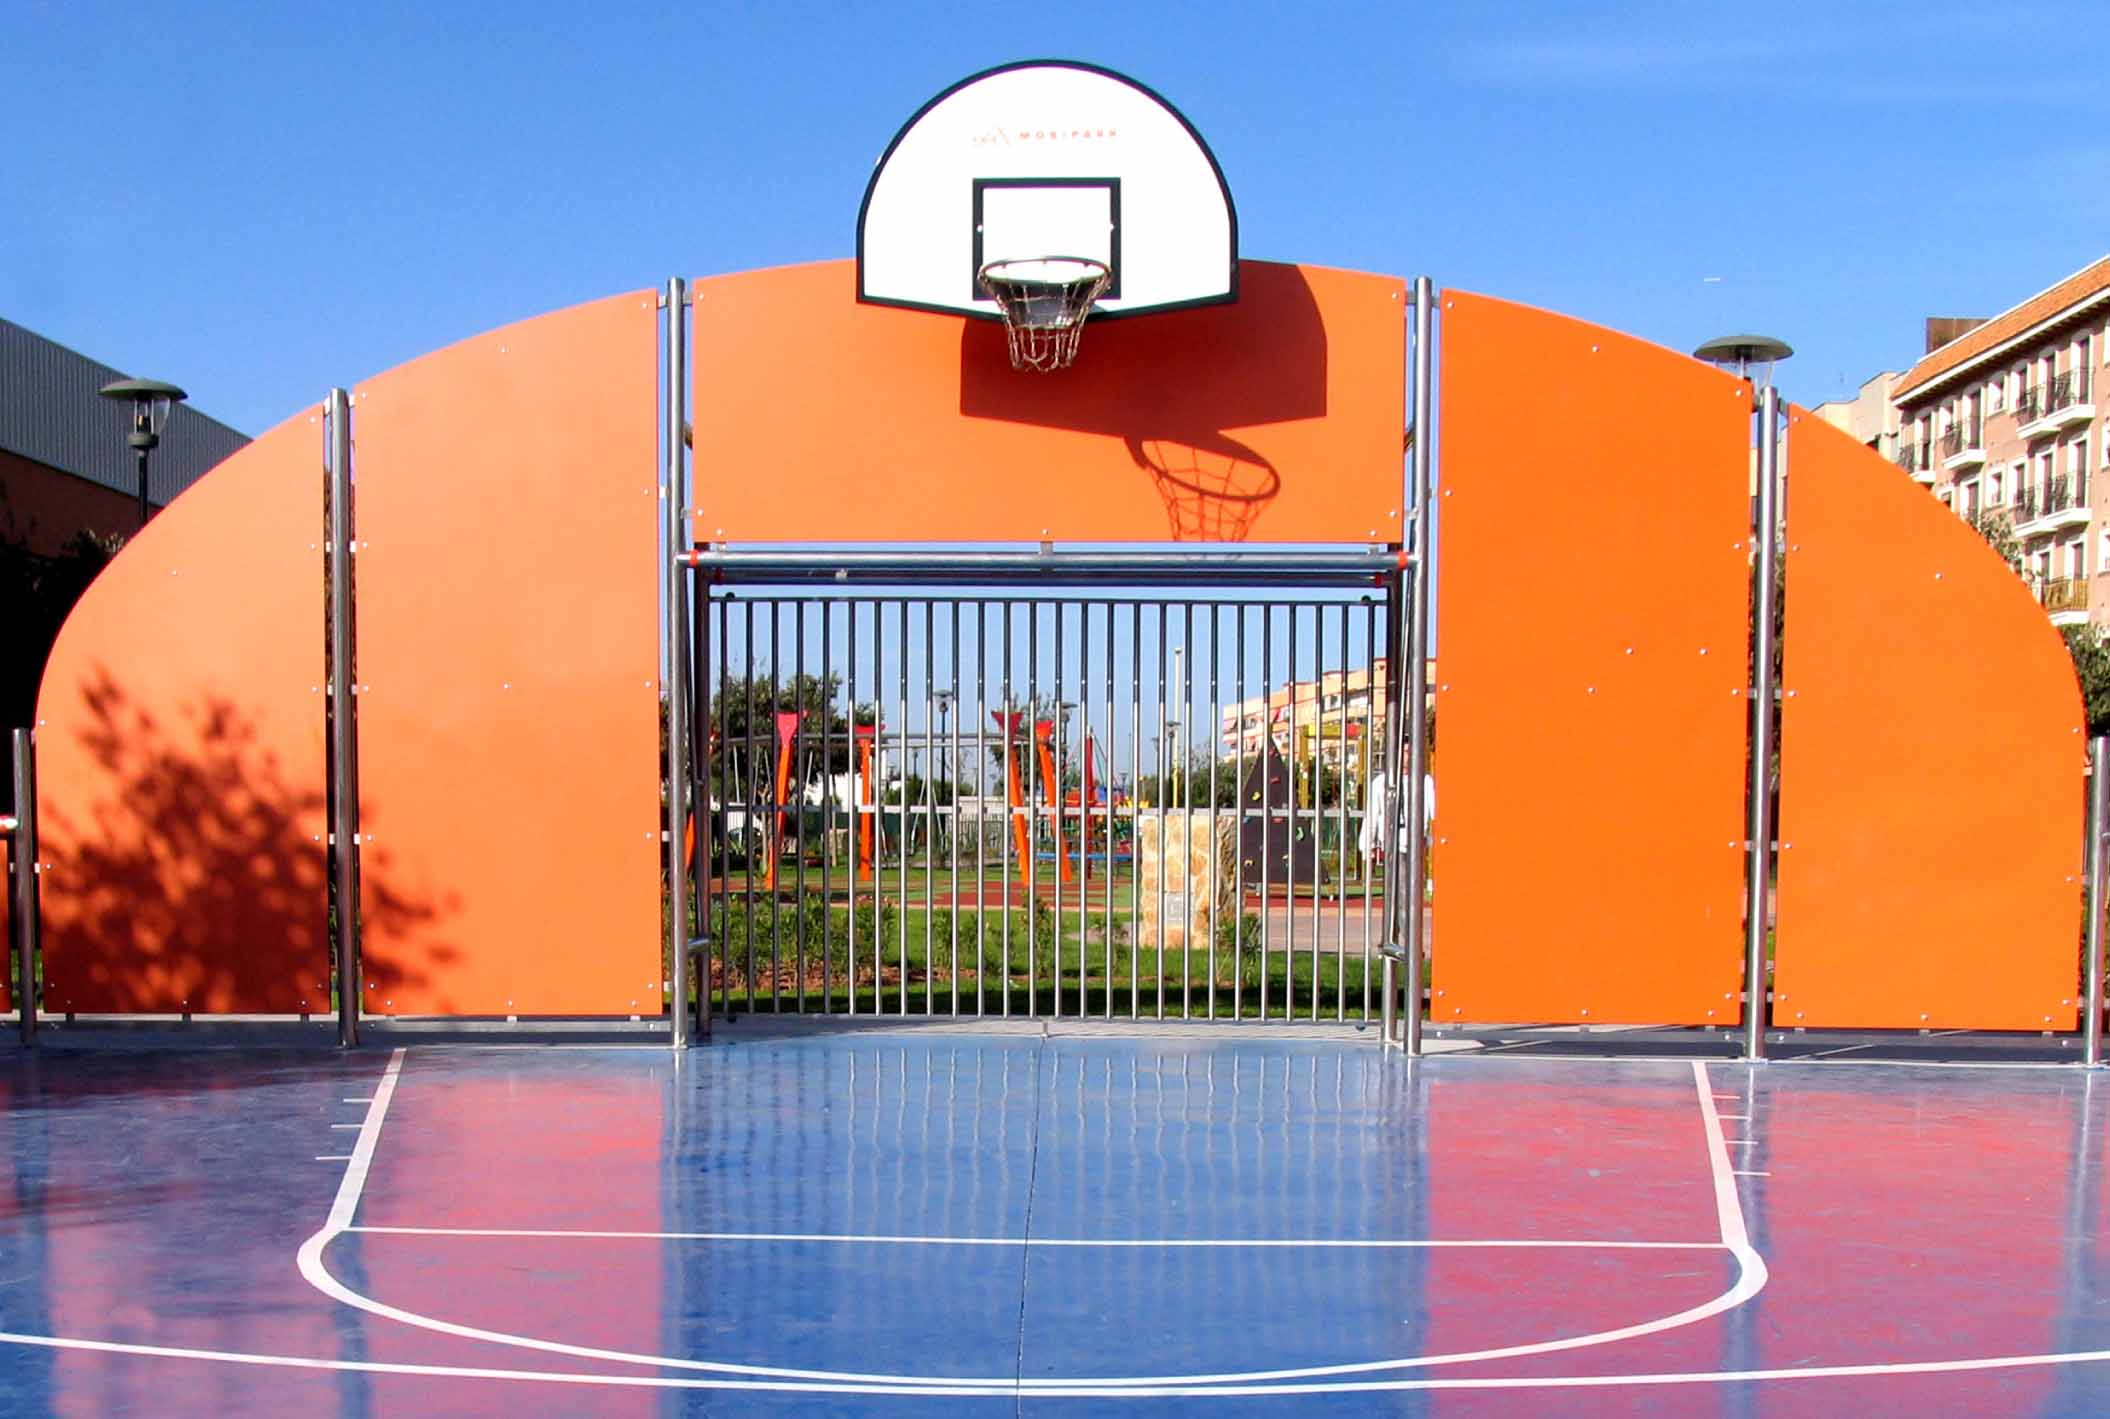 multisport court with surface finish with acrilyc paint with line markings